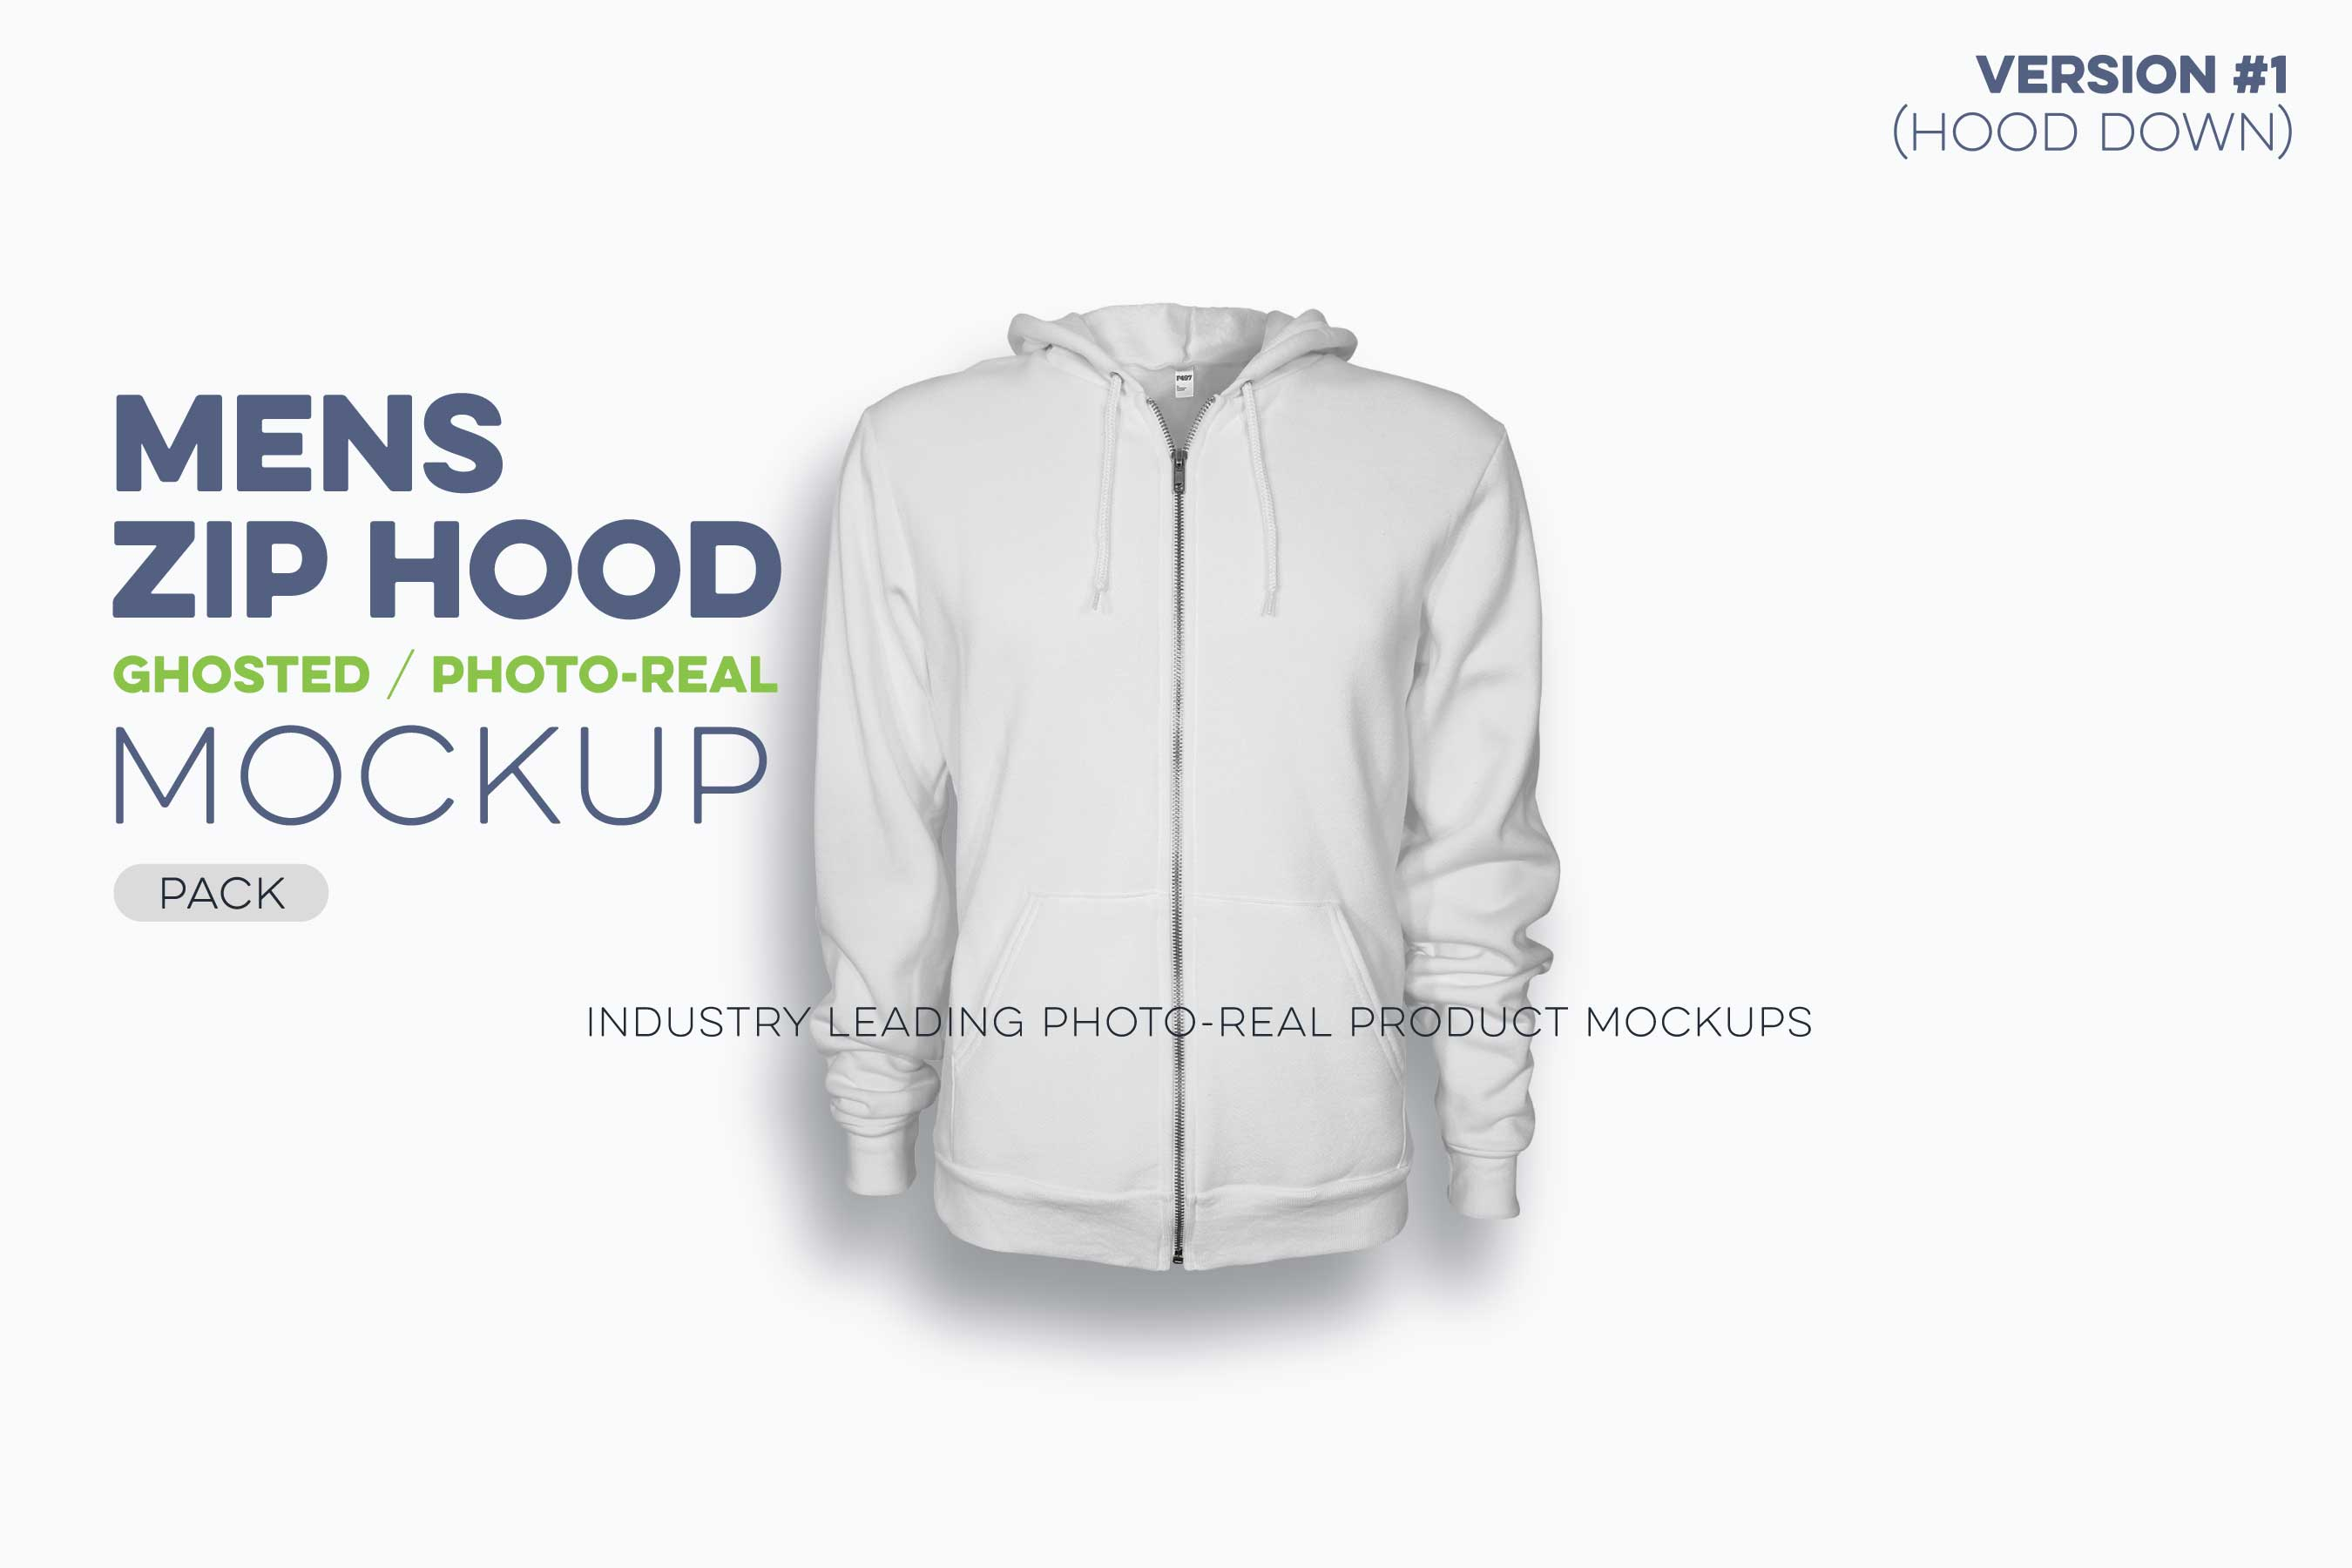 mens ghosted zip hood mockups version 1 hoodie N